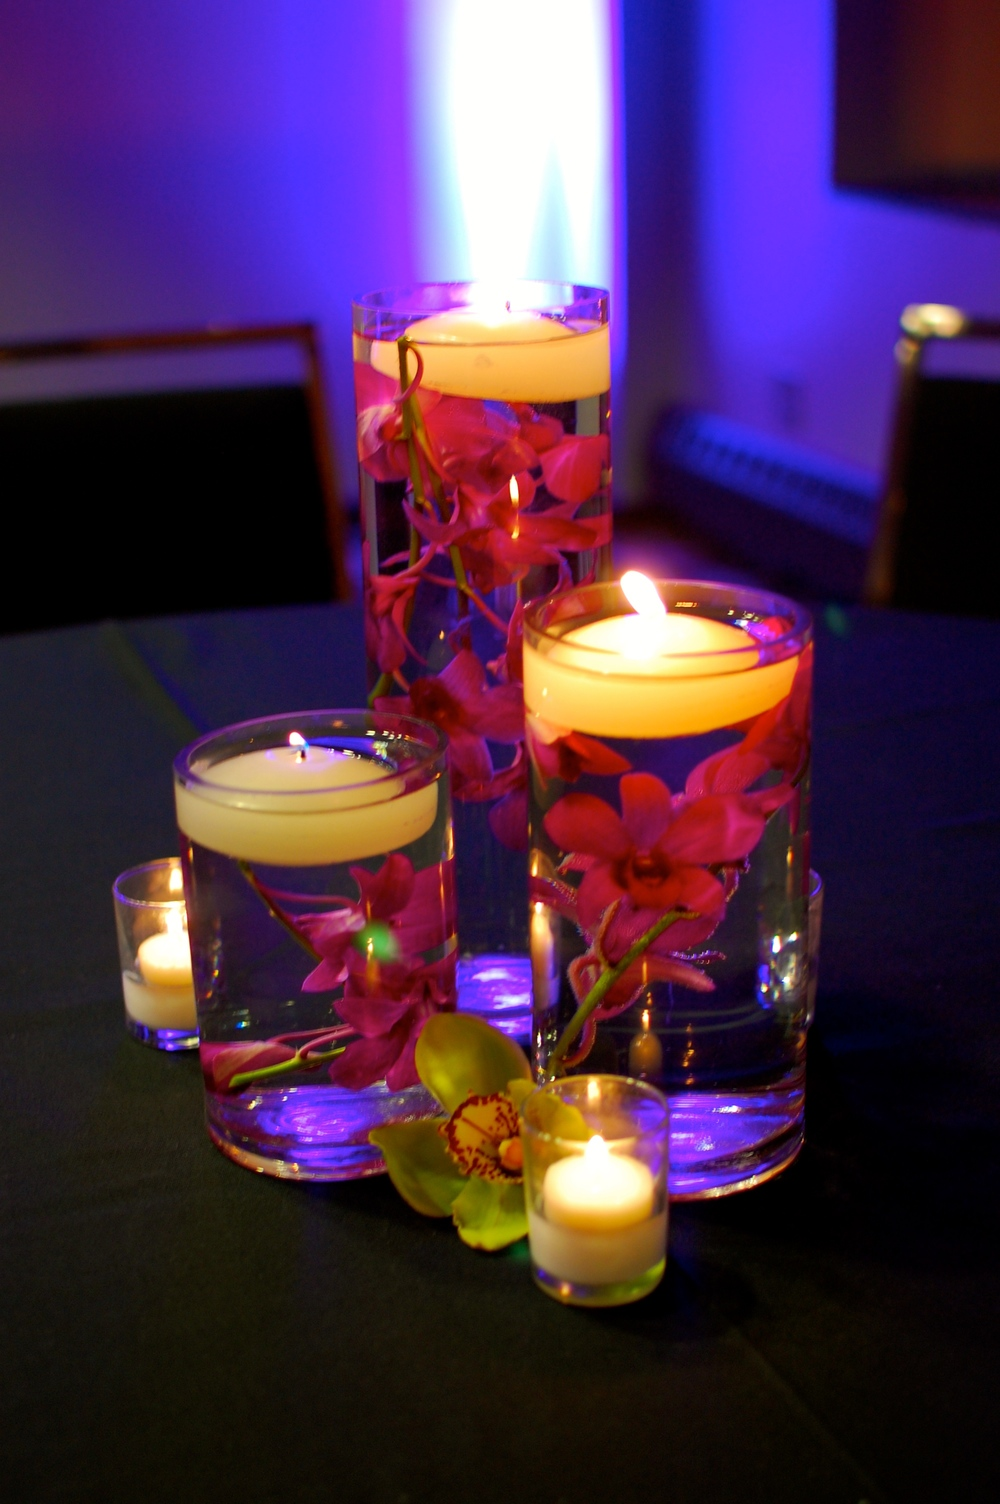 Floating candles in vases filled with purple orchids give the tables a simple and elegant look